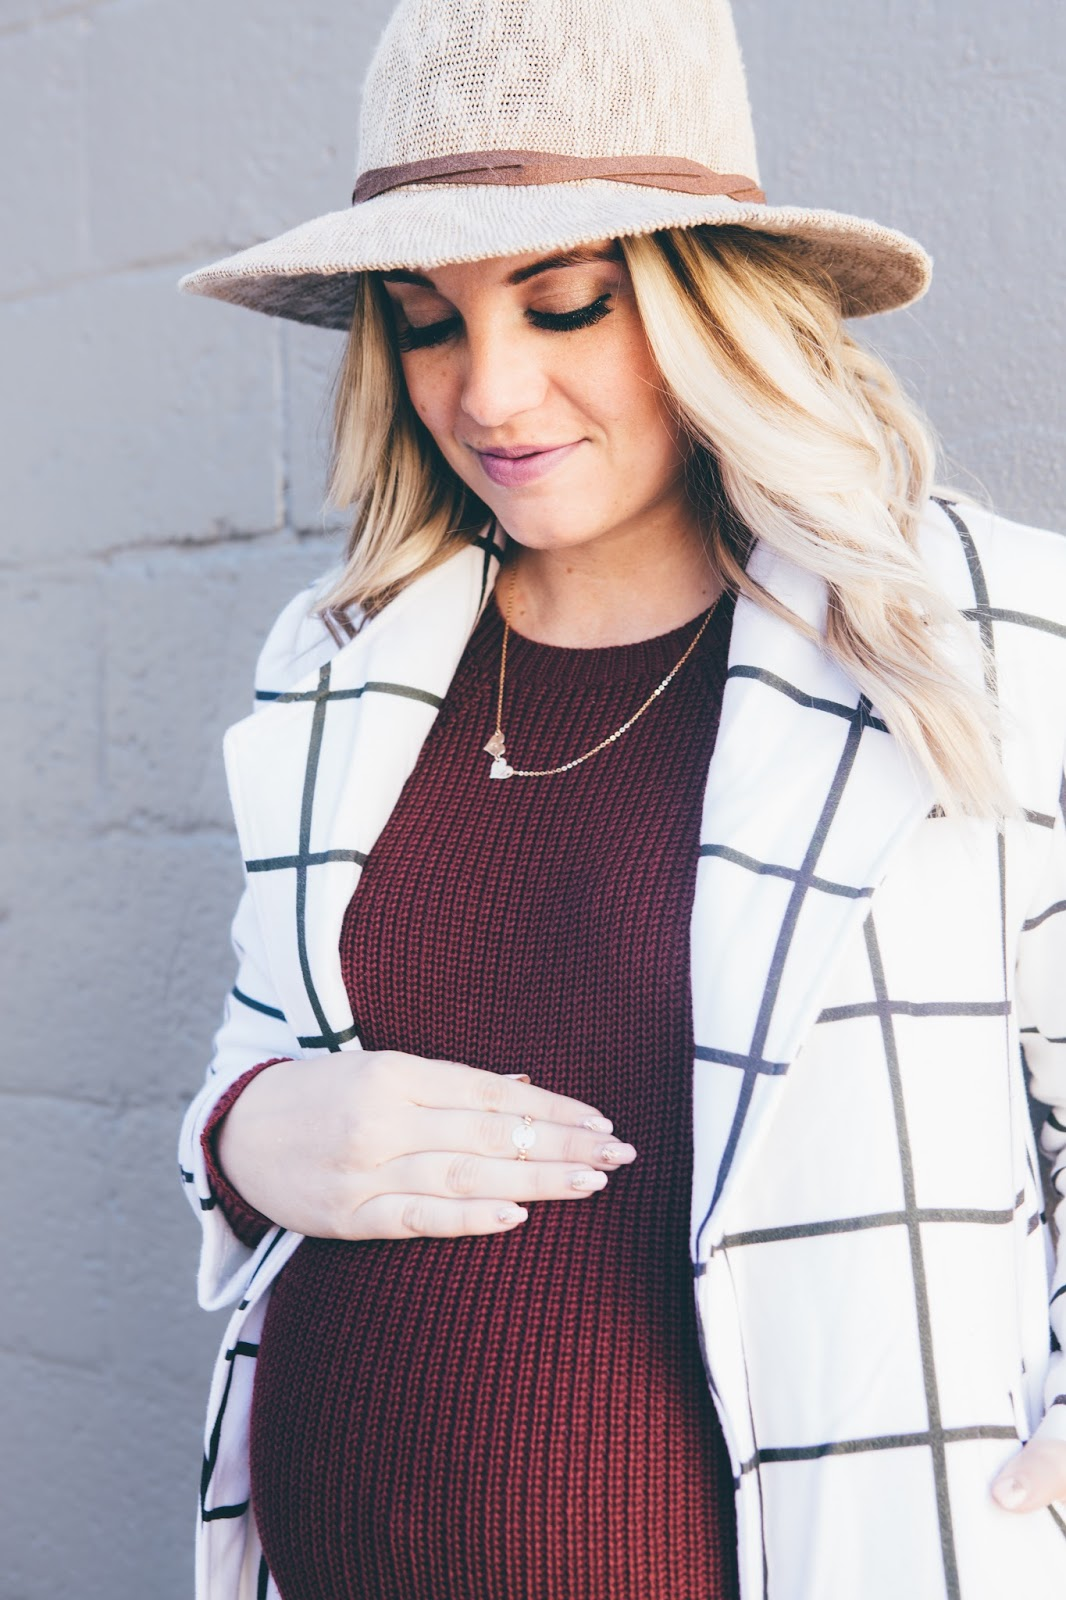 Taudrey Jewelry, Fall Outfit, Utah Fashion Bloggers